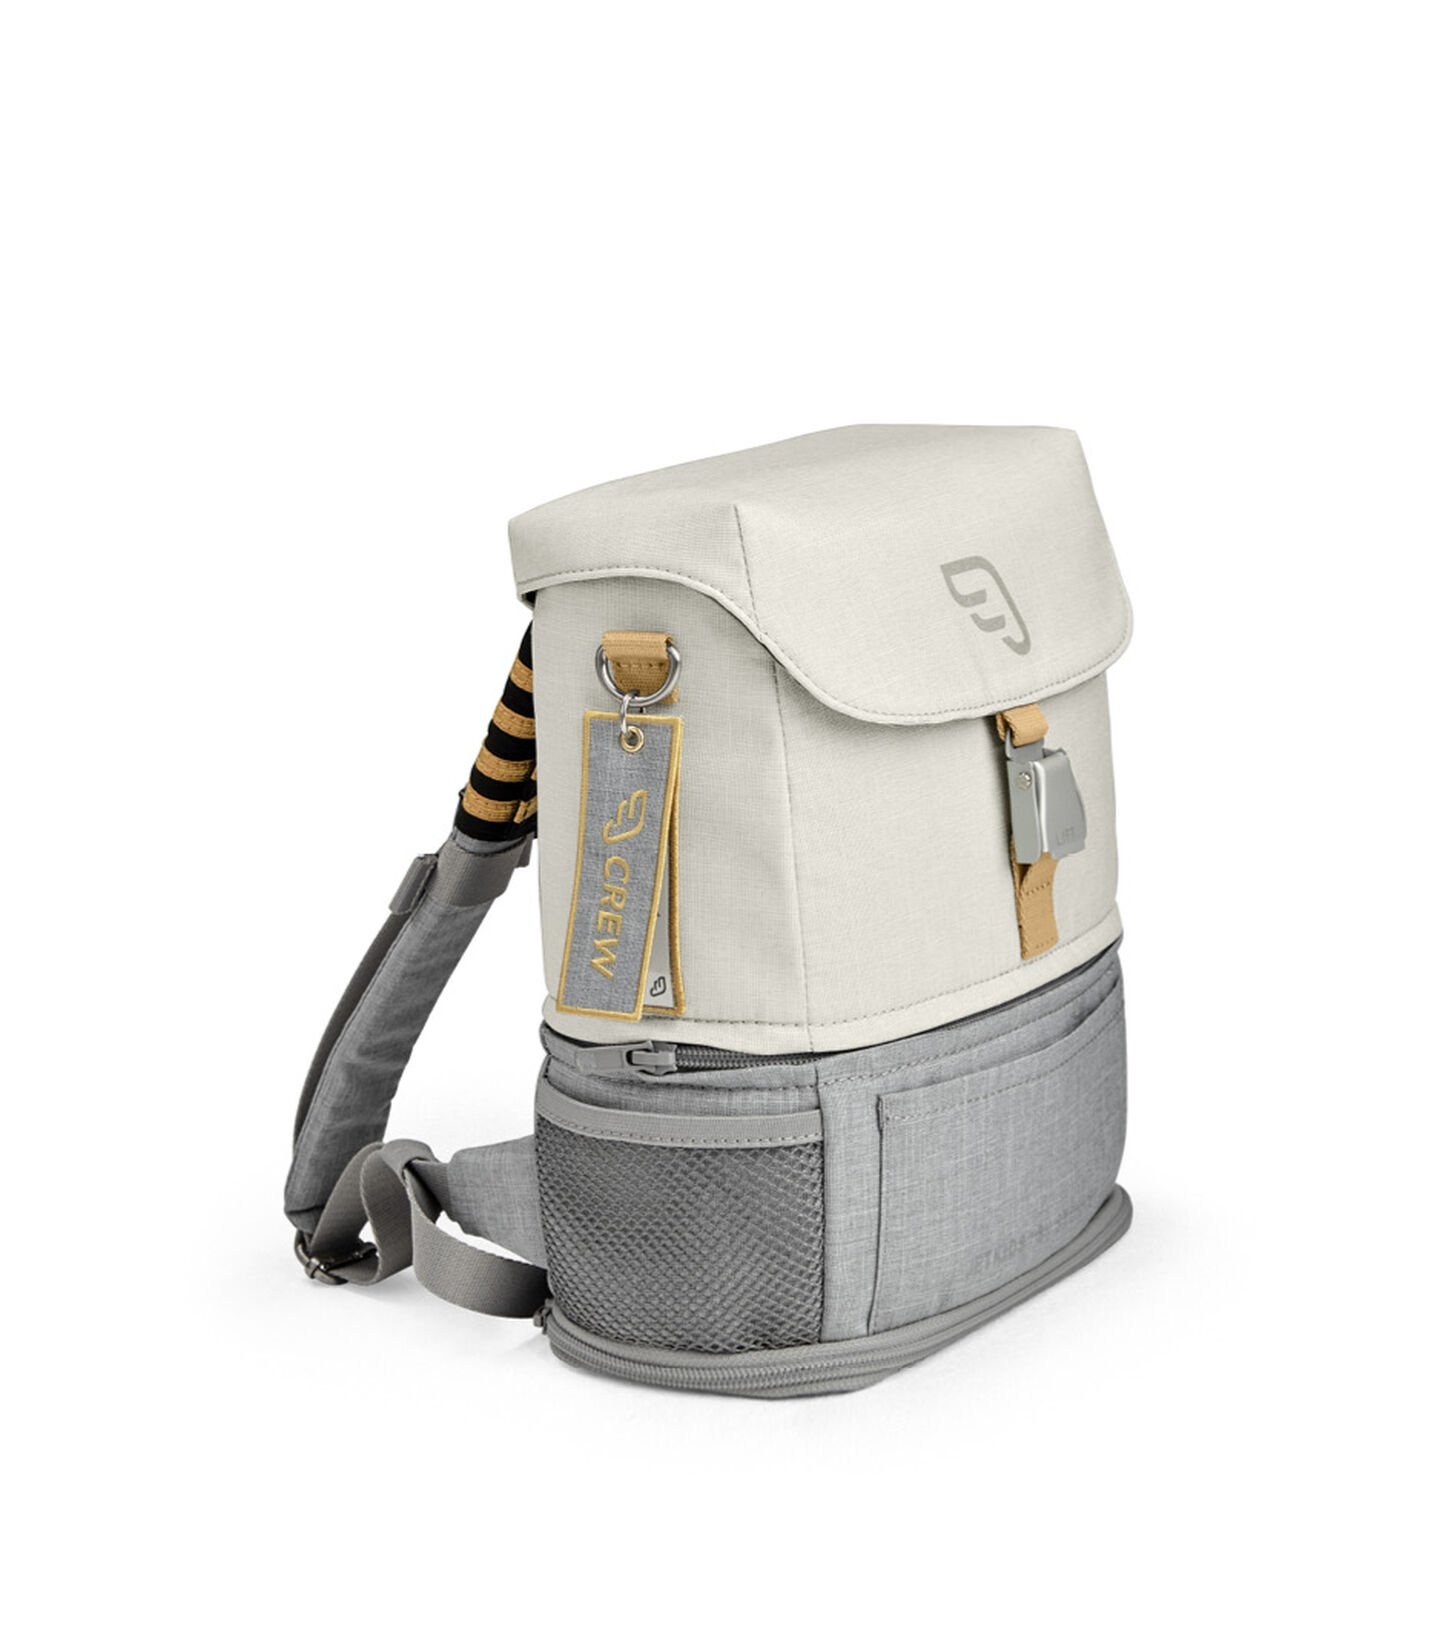 JetKids by Stokke® Crew Backpack Bianco, Bianco, mainview view 2